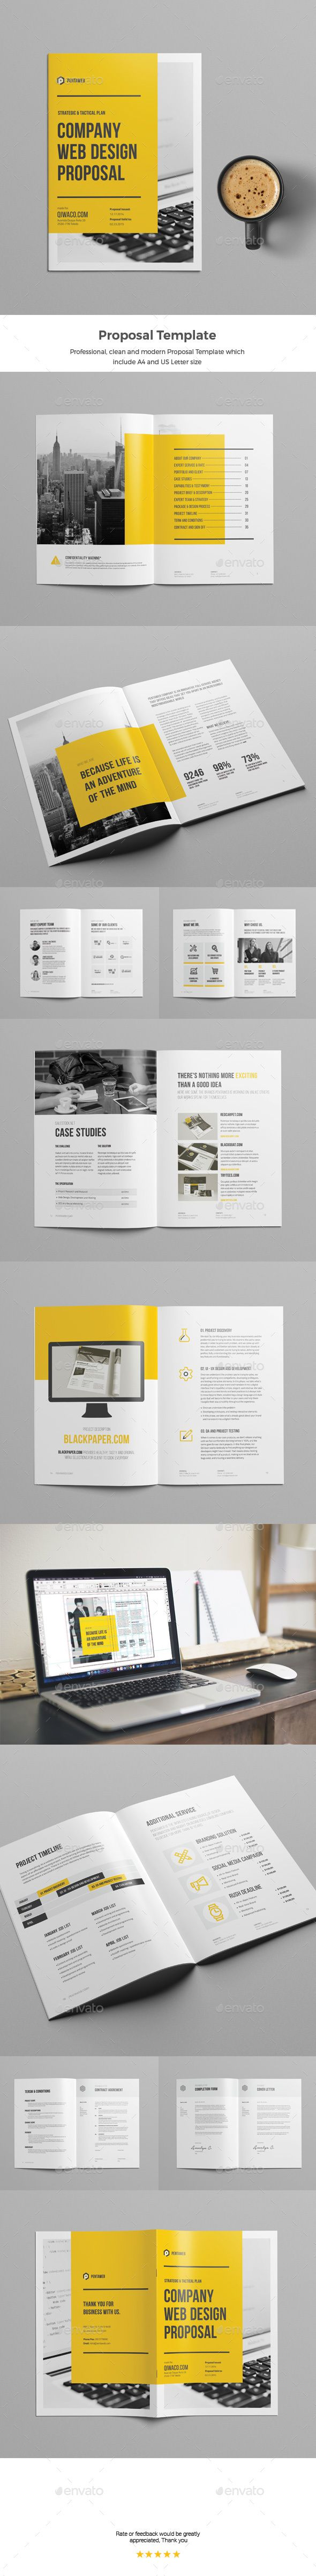 Web Design Proposal — InDesign INDD #black proposal #website proposal • Download ➝ https://graphicriver.net/item/web-design-proposal/19565422?ref=pxcr